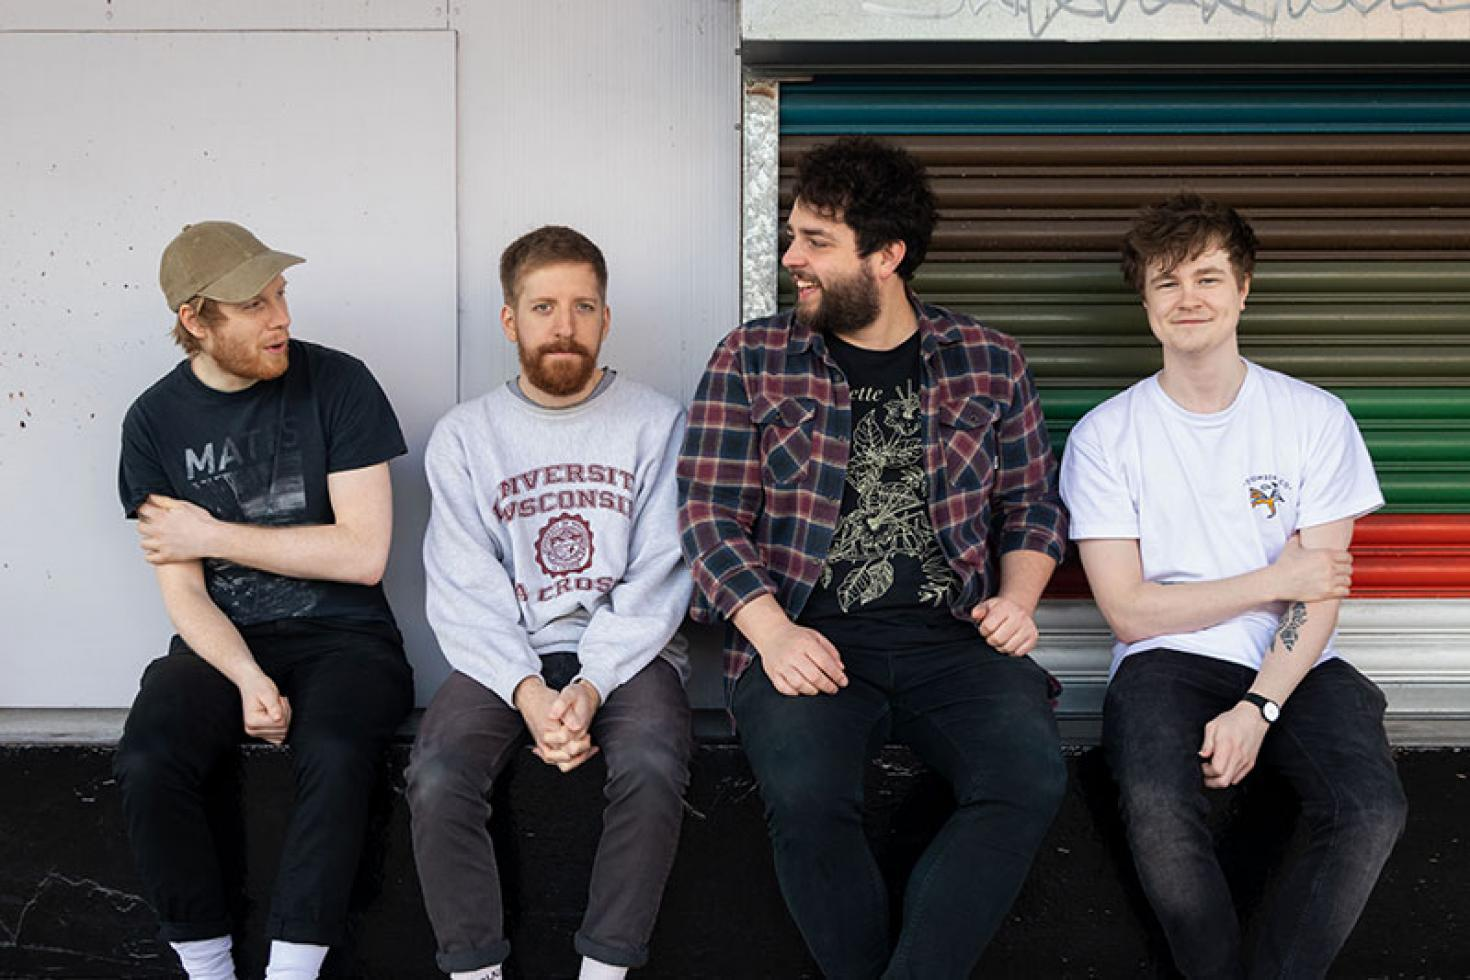 I Feel Fine release new single 'You Know Where I'm Hiding'